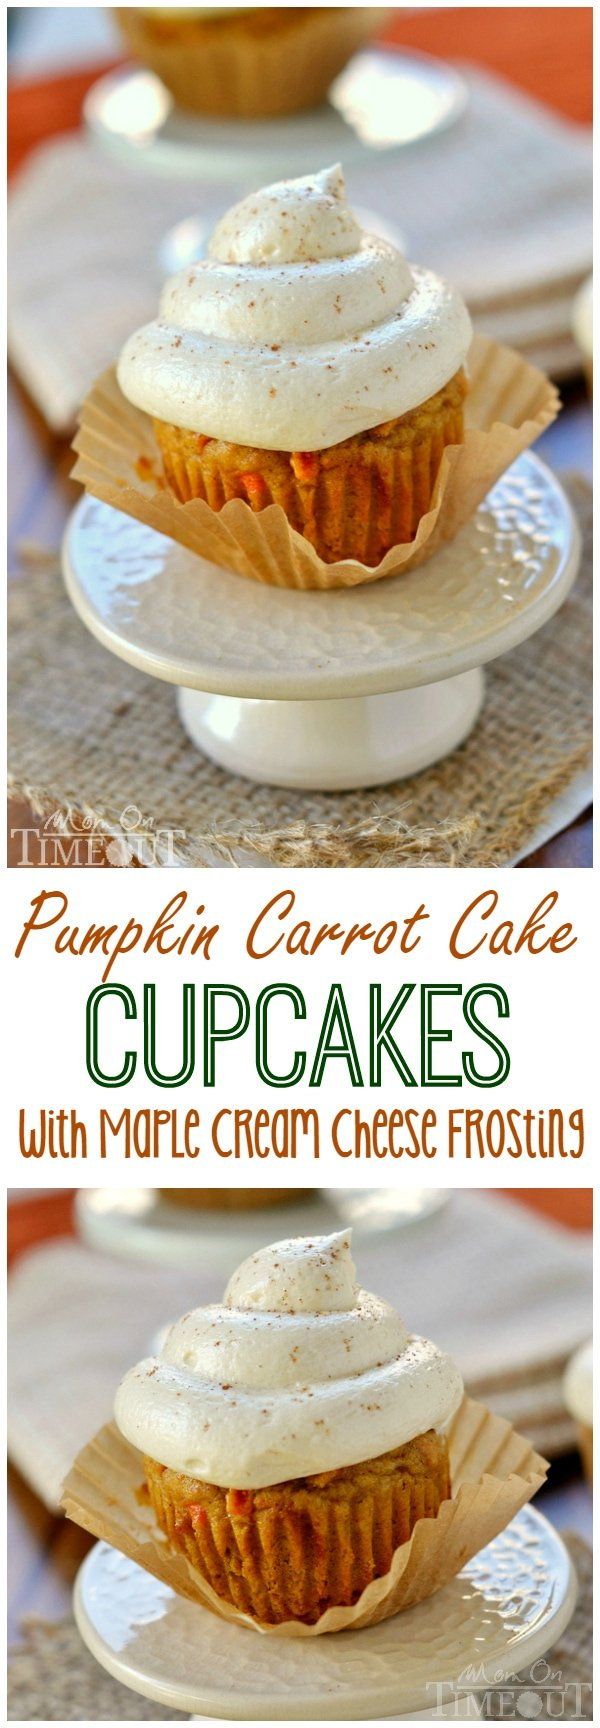 Pumpkin Carrot Cake Cupcakes with Maple Cream Cheese Frosting - the cupcakes you need to make this Fall! | MomOnTimeout.com | #dessert #recipe #pumpkin #maple #cupcakes